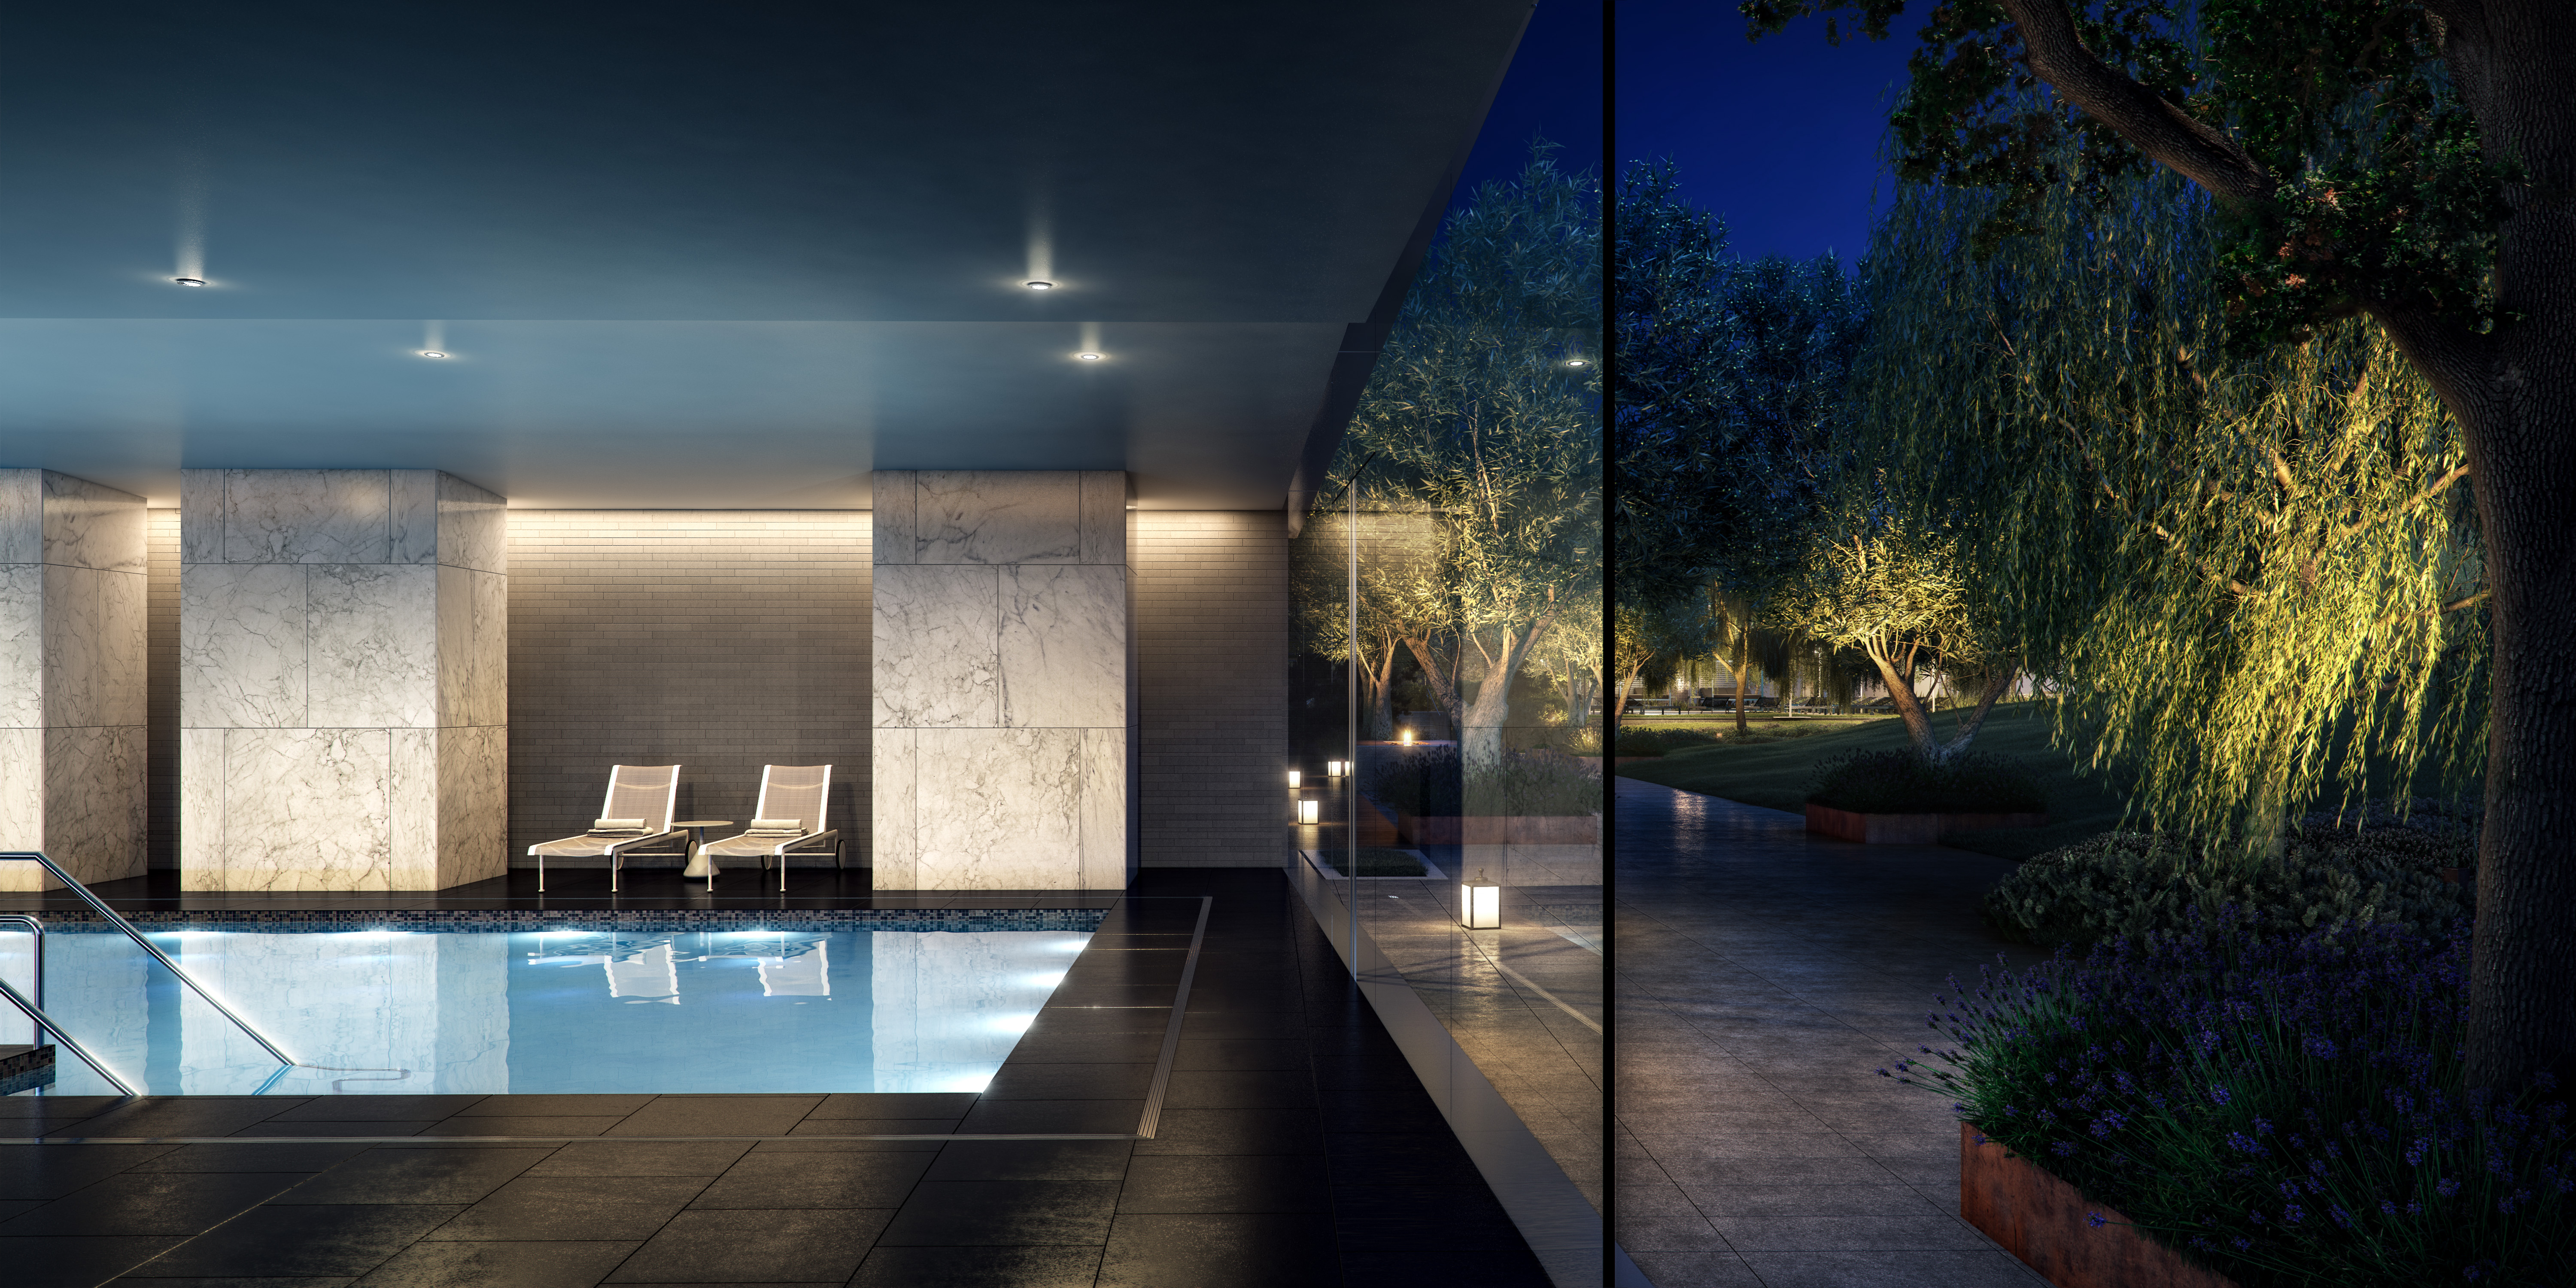 A rendering of the pool